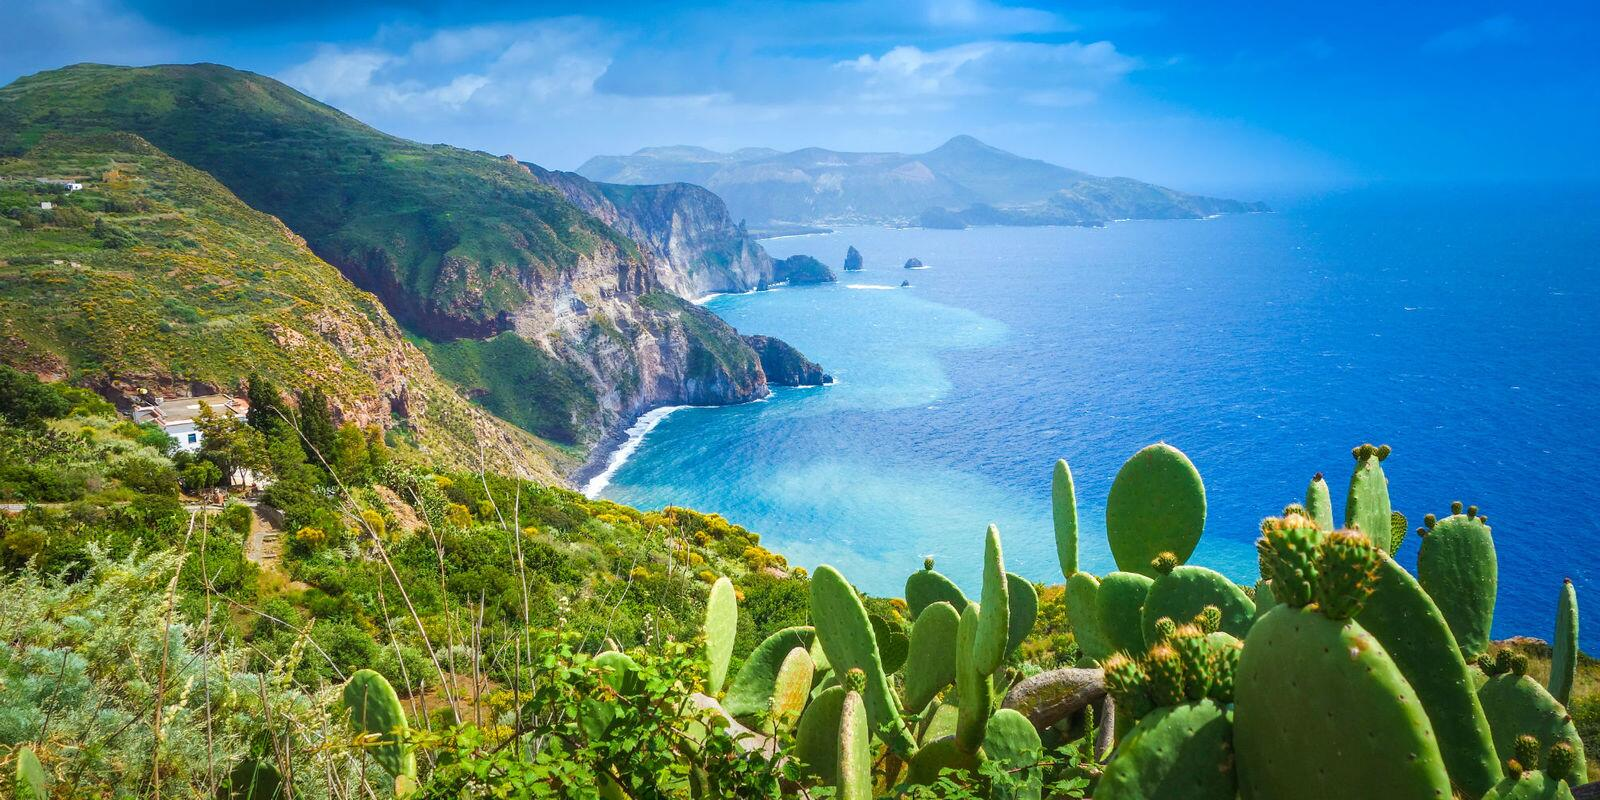 The seven wonders of the Mediterranean - 7 days with Hostess on board